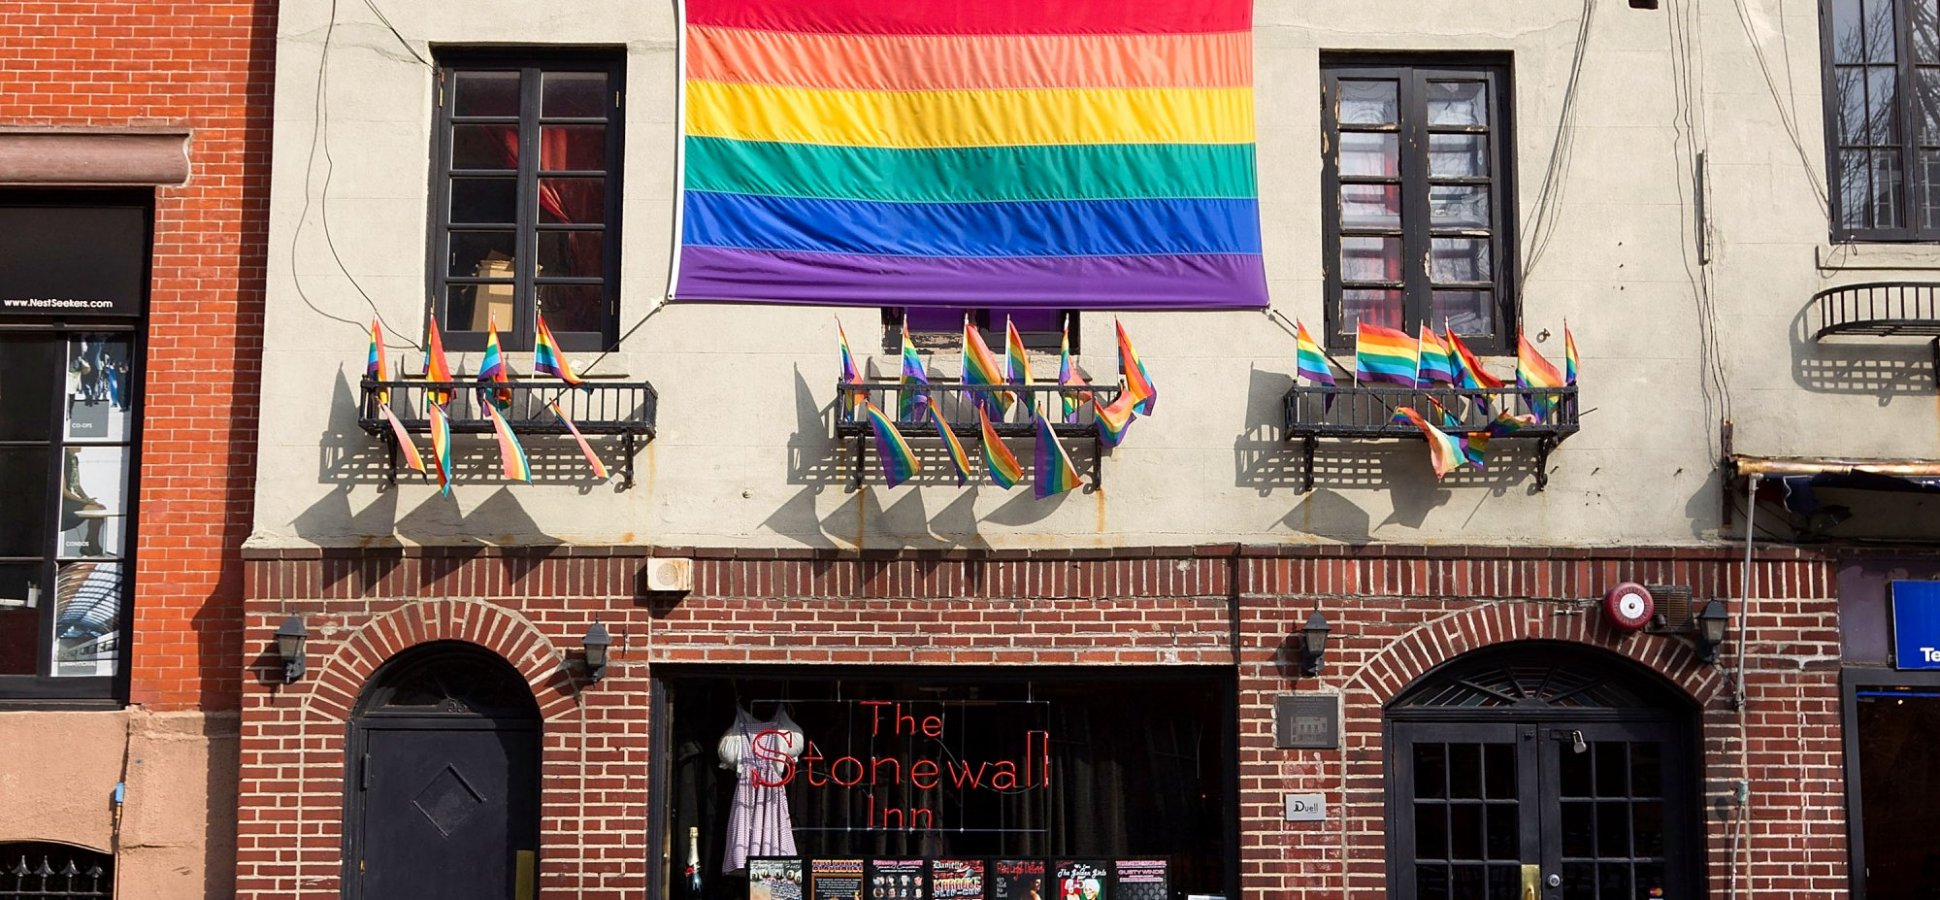 50 Years Ago the Stonewall Riots Sparked a Movement That Lead to Pride Month. 3 Lessons for Leaders Who Want to Make Positive Change